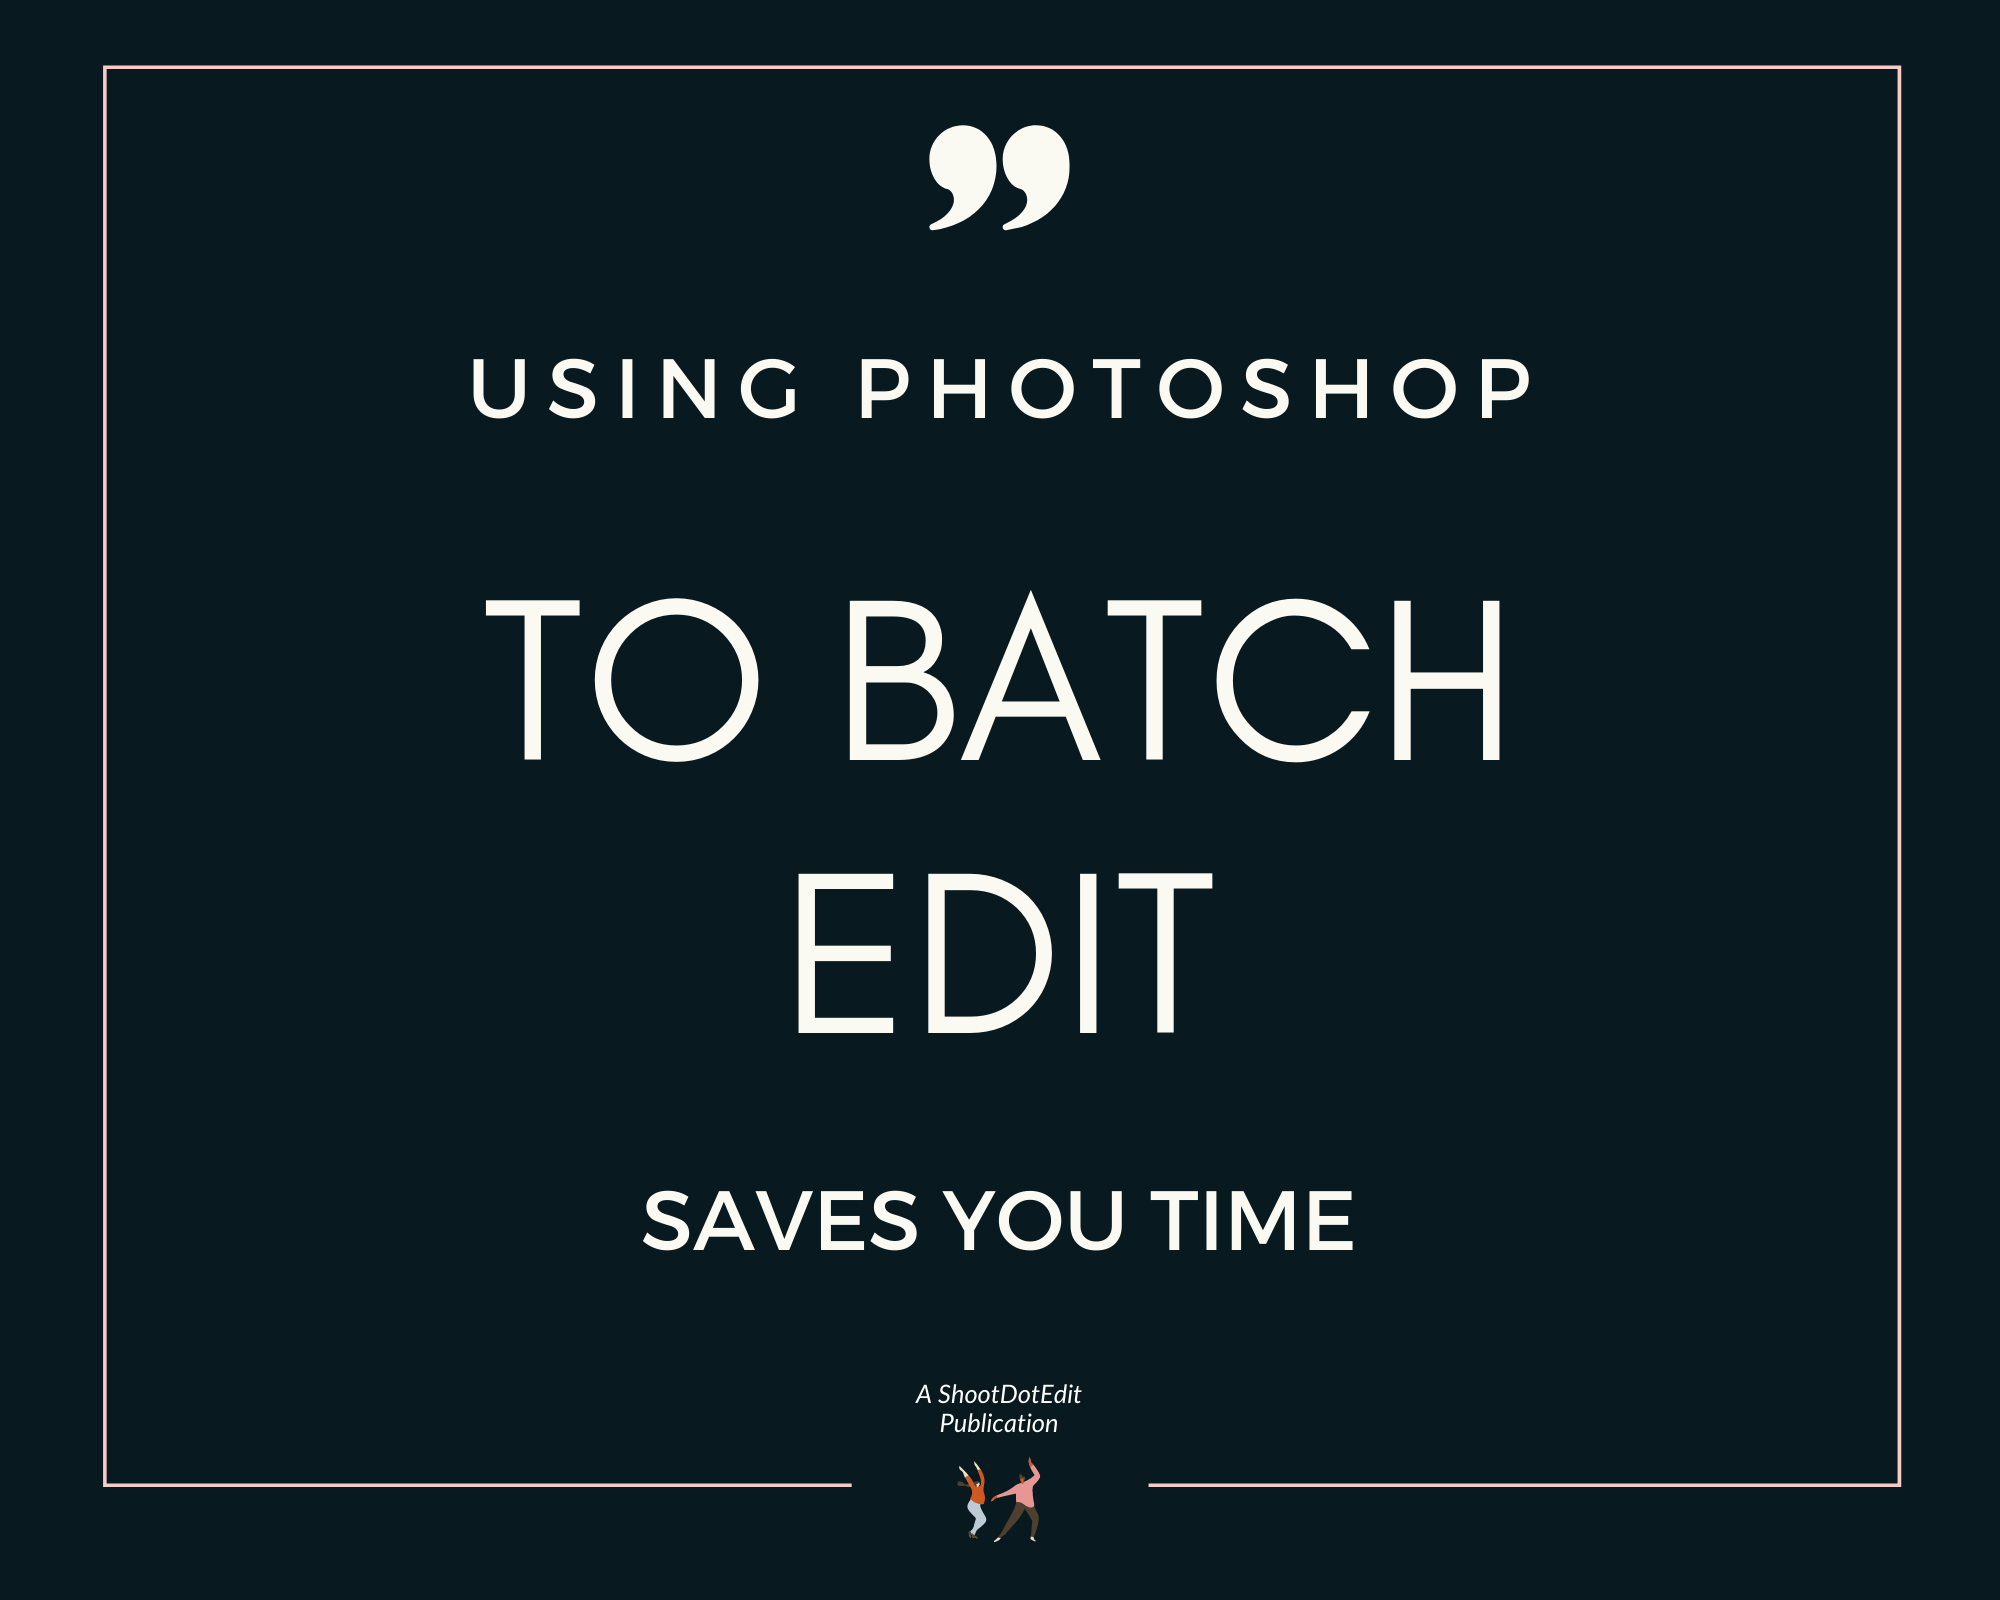 Infographic stating using photograph to batch edit saves you time